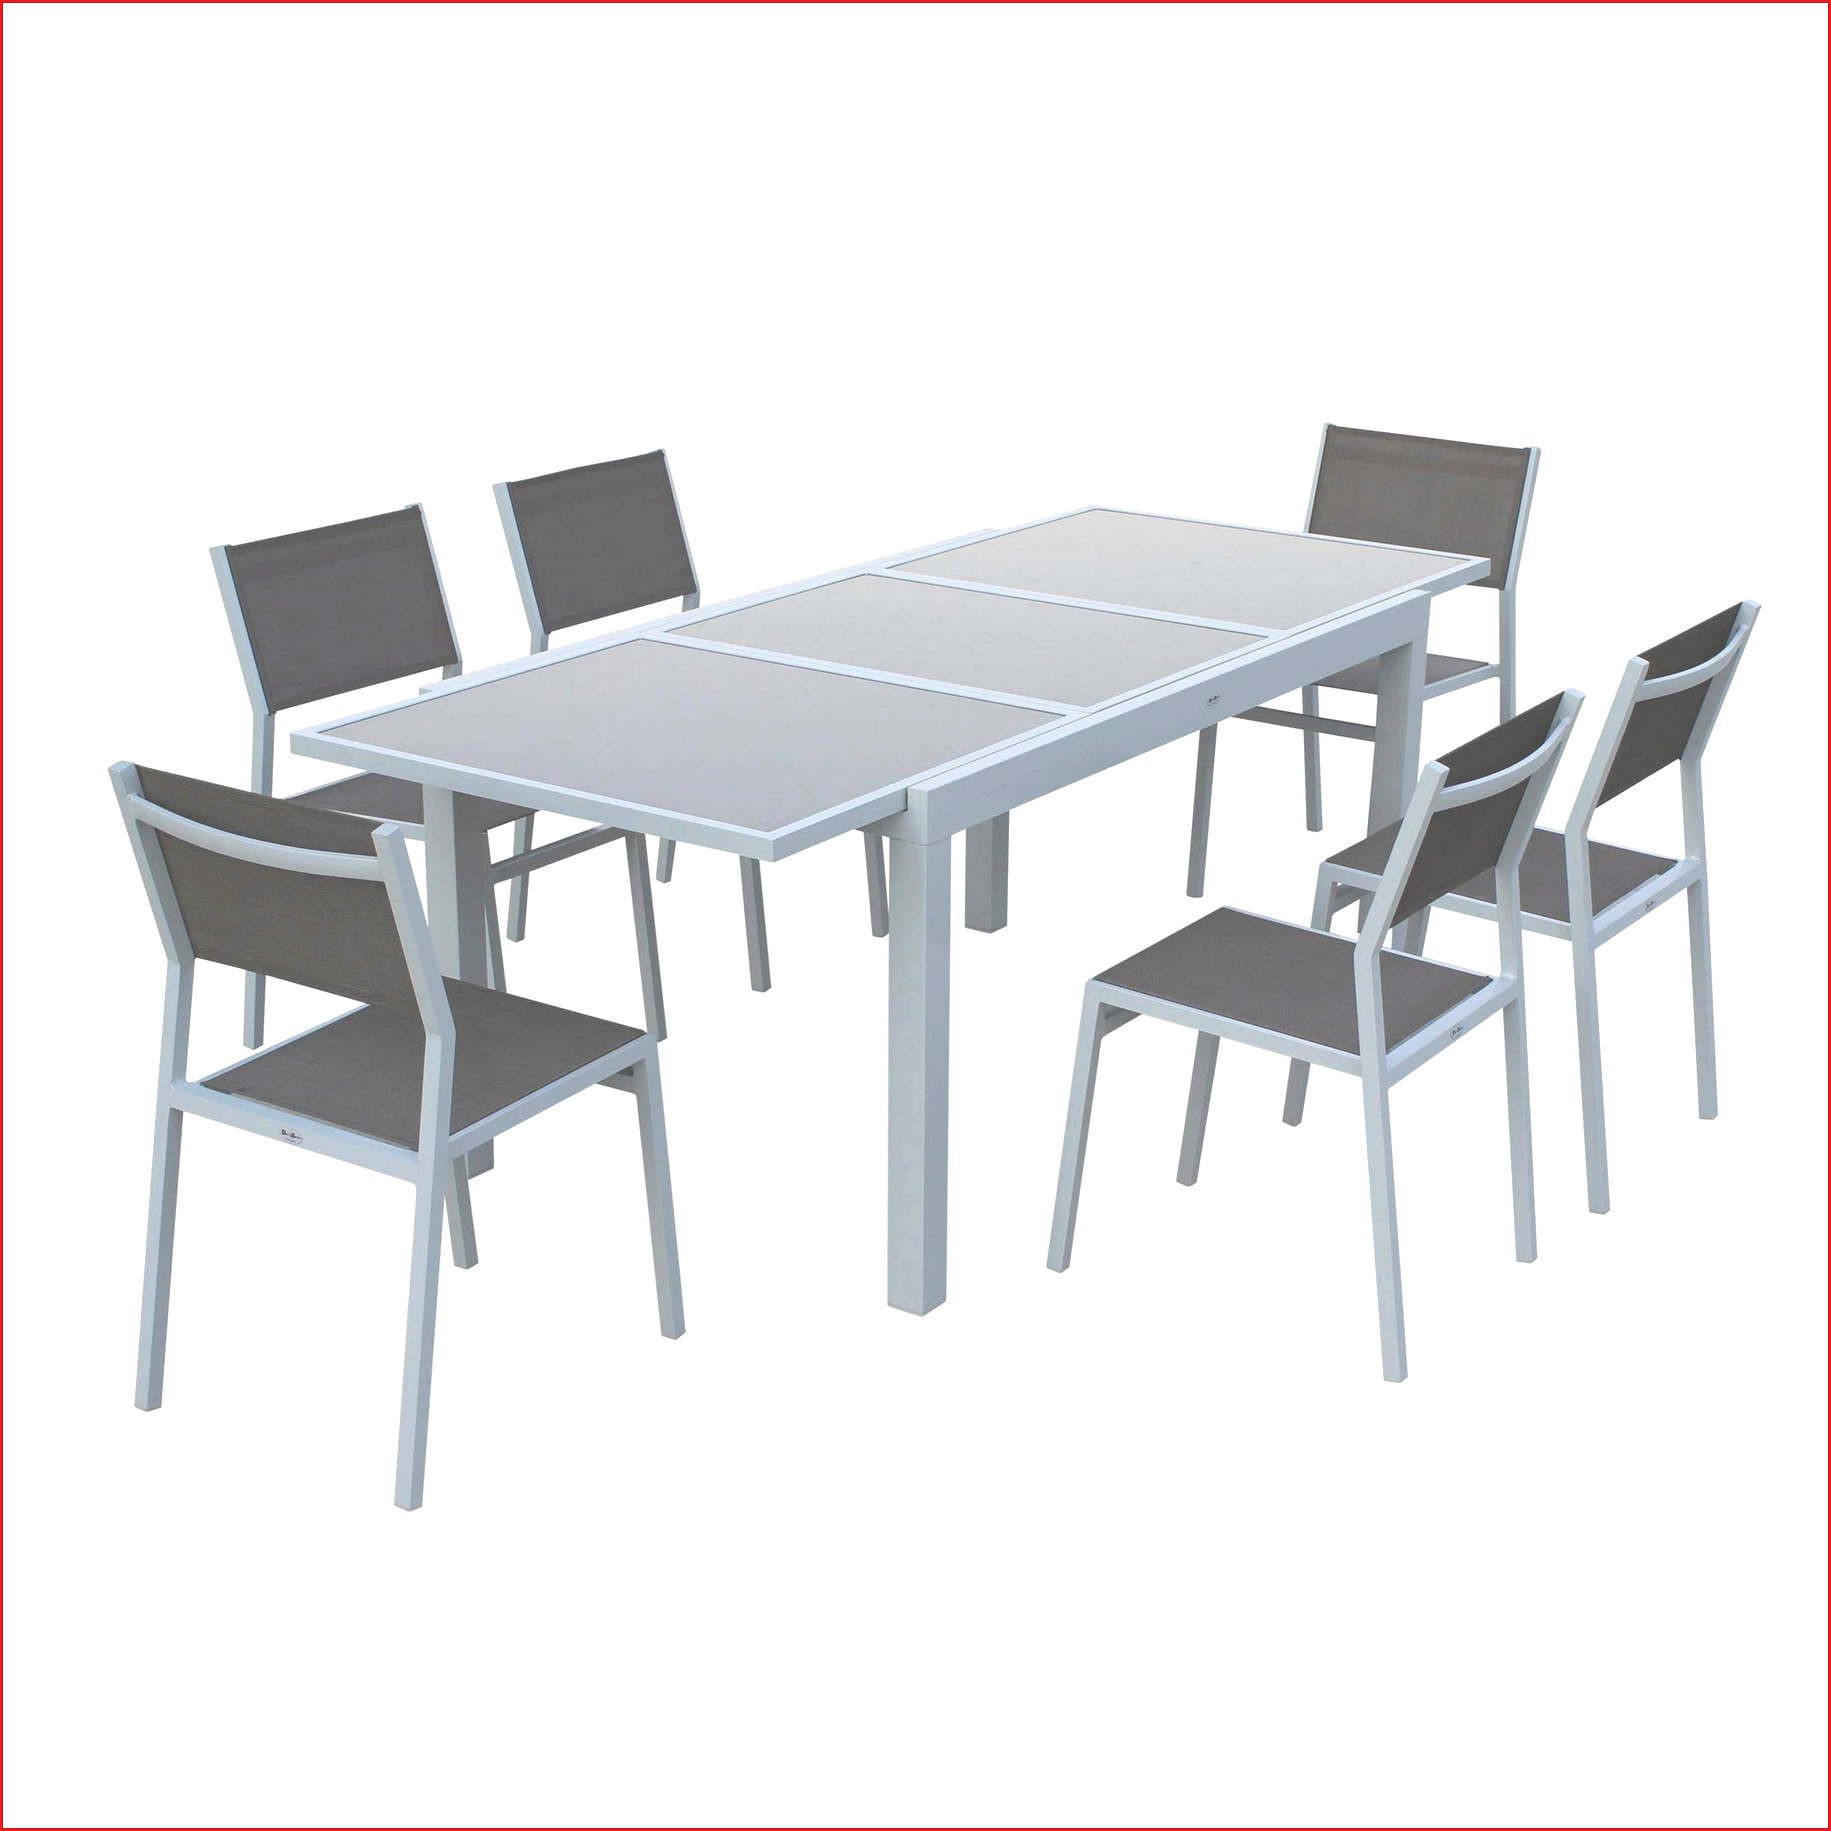 Table Banc Bois Exterieur Inspirant Jardin Archives Francesginsberg Of 21 Charmant Table Banc Bois Exterieur